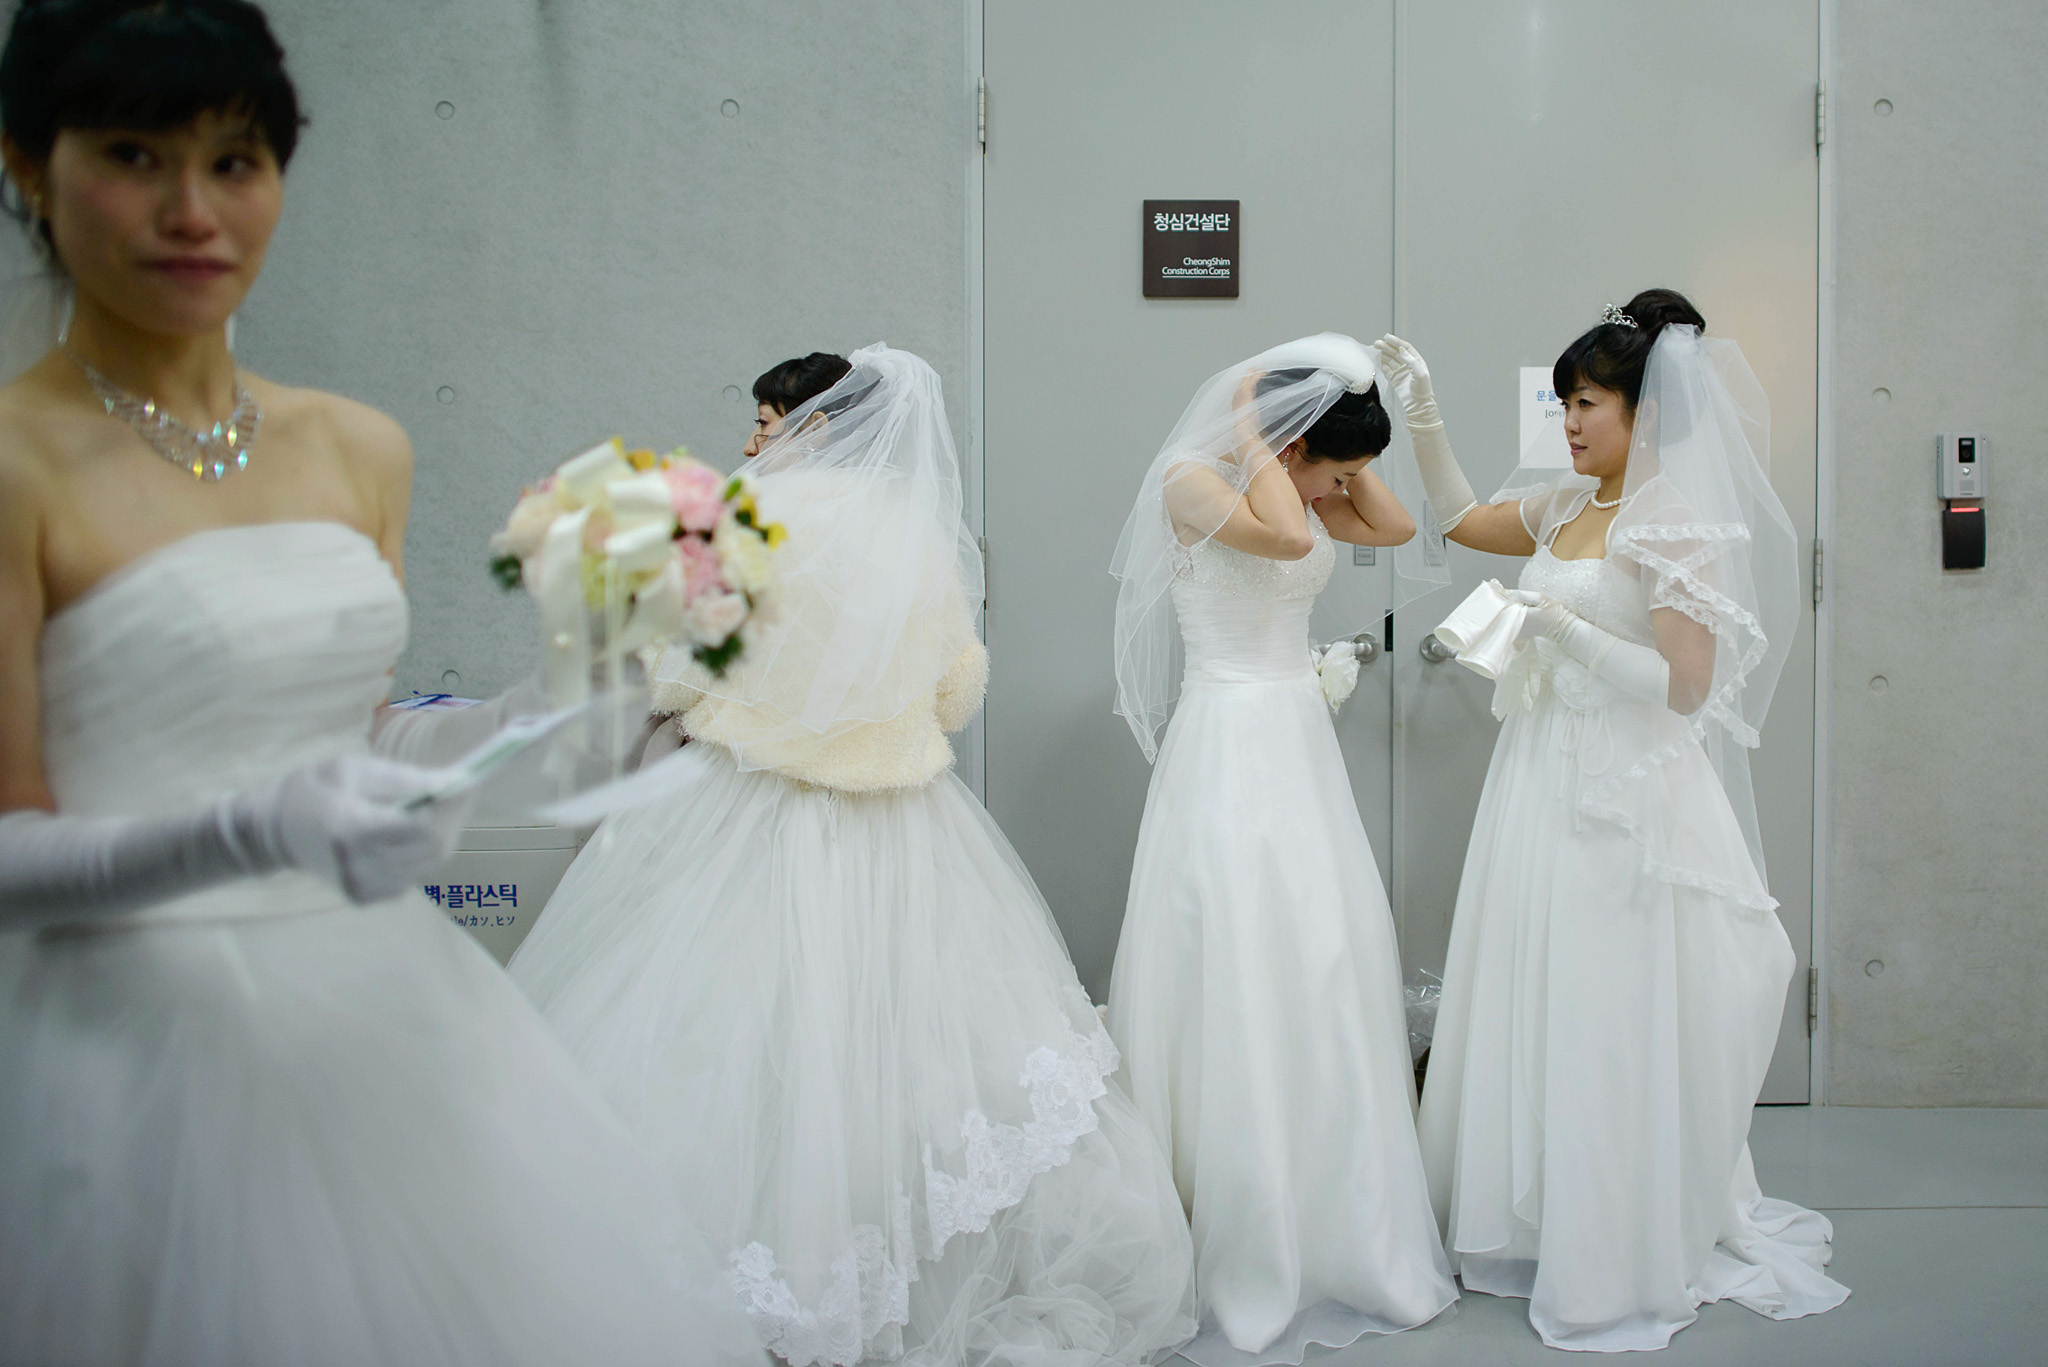 "Brides prepare for a mass wedding at an ...Brides prepare for a mass wedding at an event held by the Unification Church in Gapyeong on February 12, 2014. Unification Church members forming 2500 couples from 52 countries were married in a mass wedding in South Korea -- only the second such event since the death of their ""messiah"" and controversial church founder Sun Myung Moon."